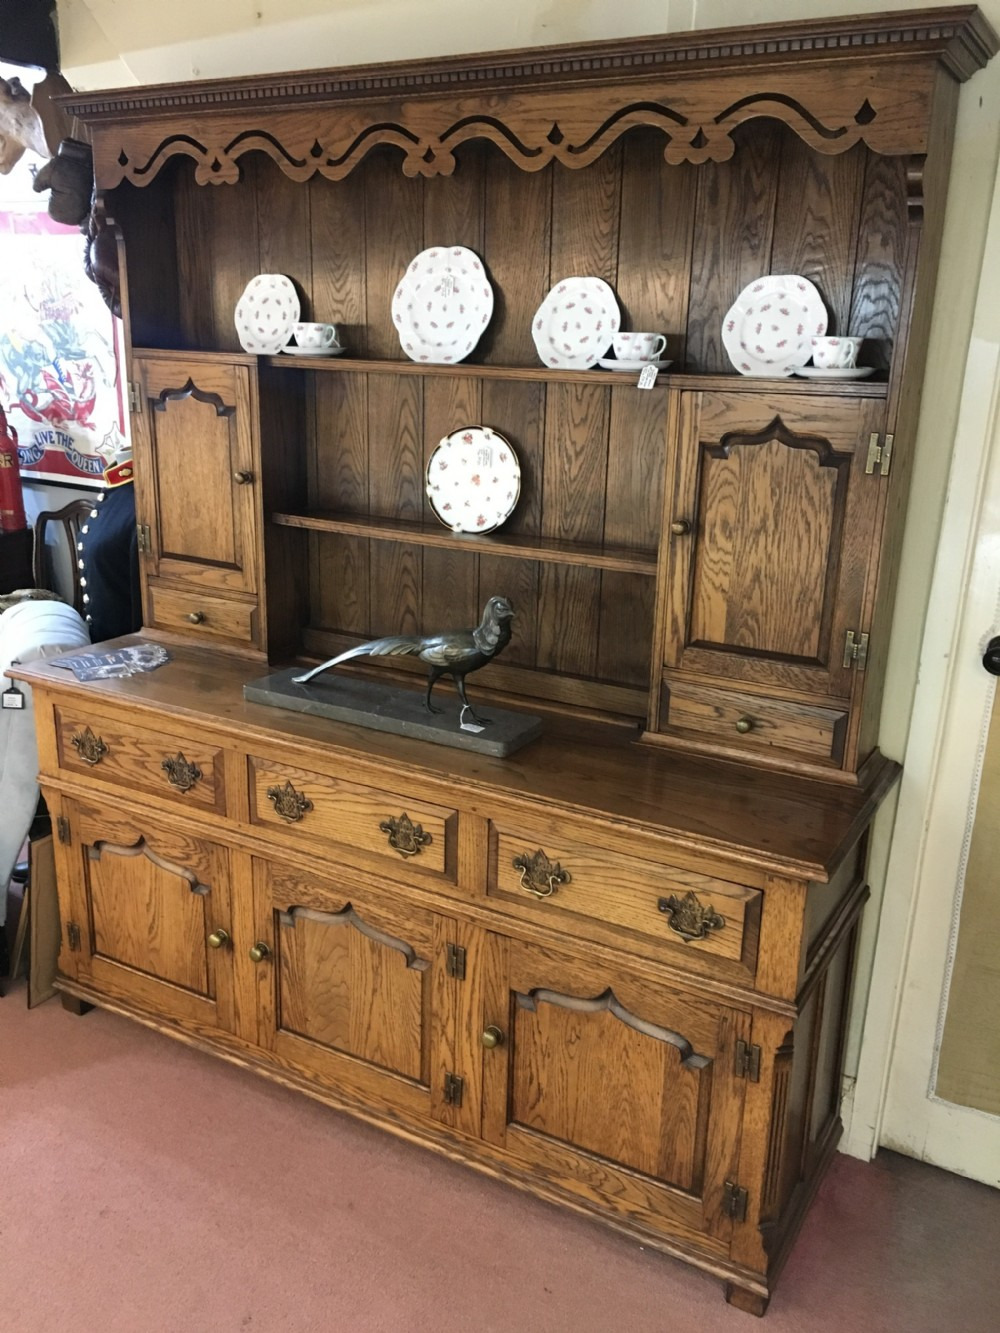 lion house antique copies oak dresser made in moreton in marsh with brass handles c20th